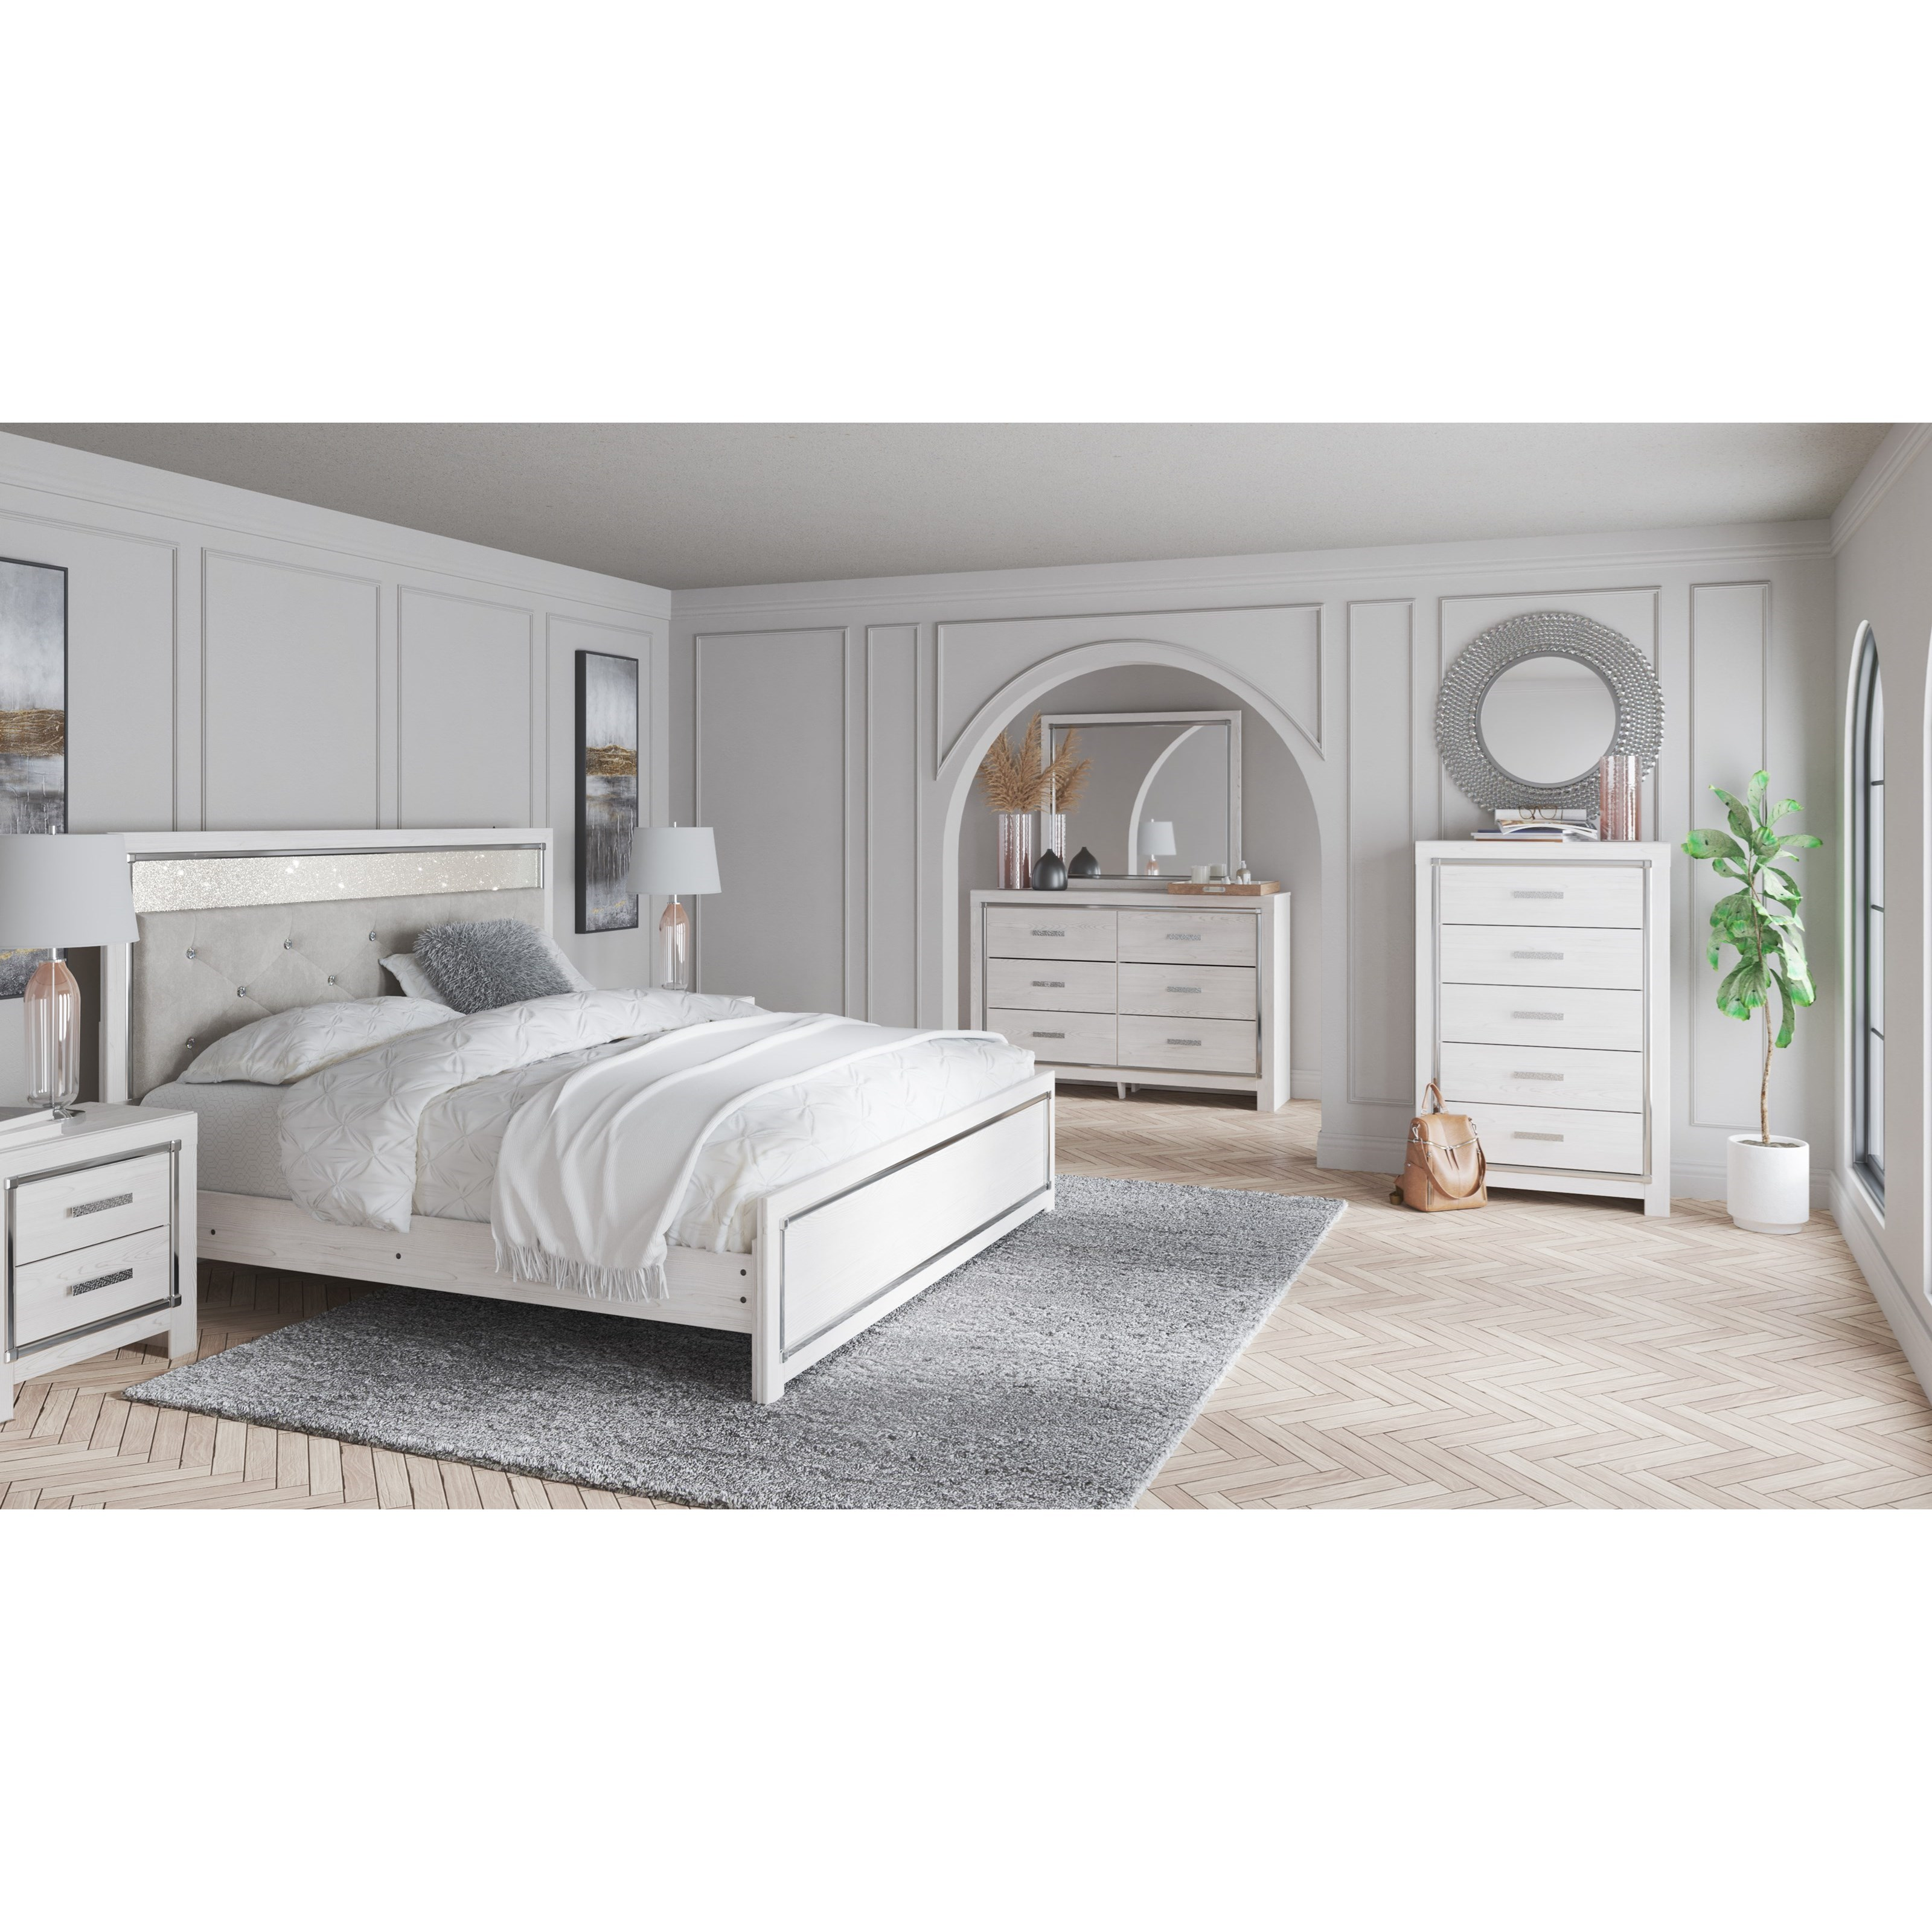 Altyra King Bedroom Group by Signature Design by Ashley at Simply Home by Lindy's